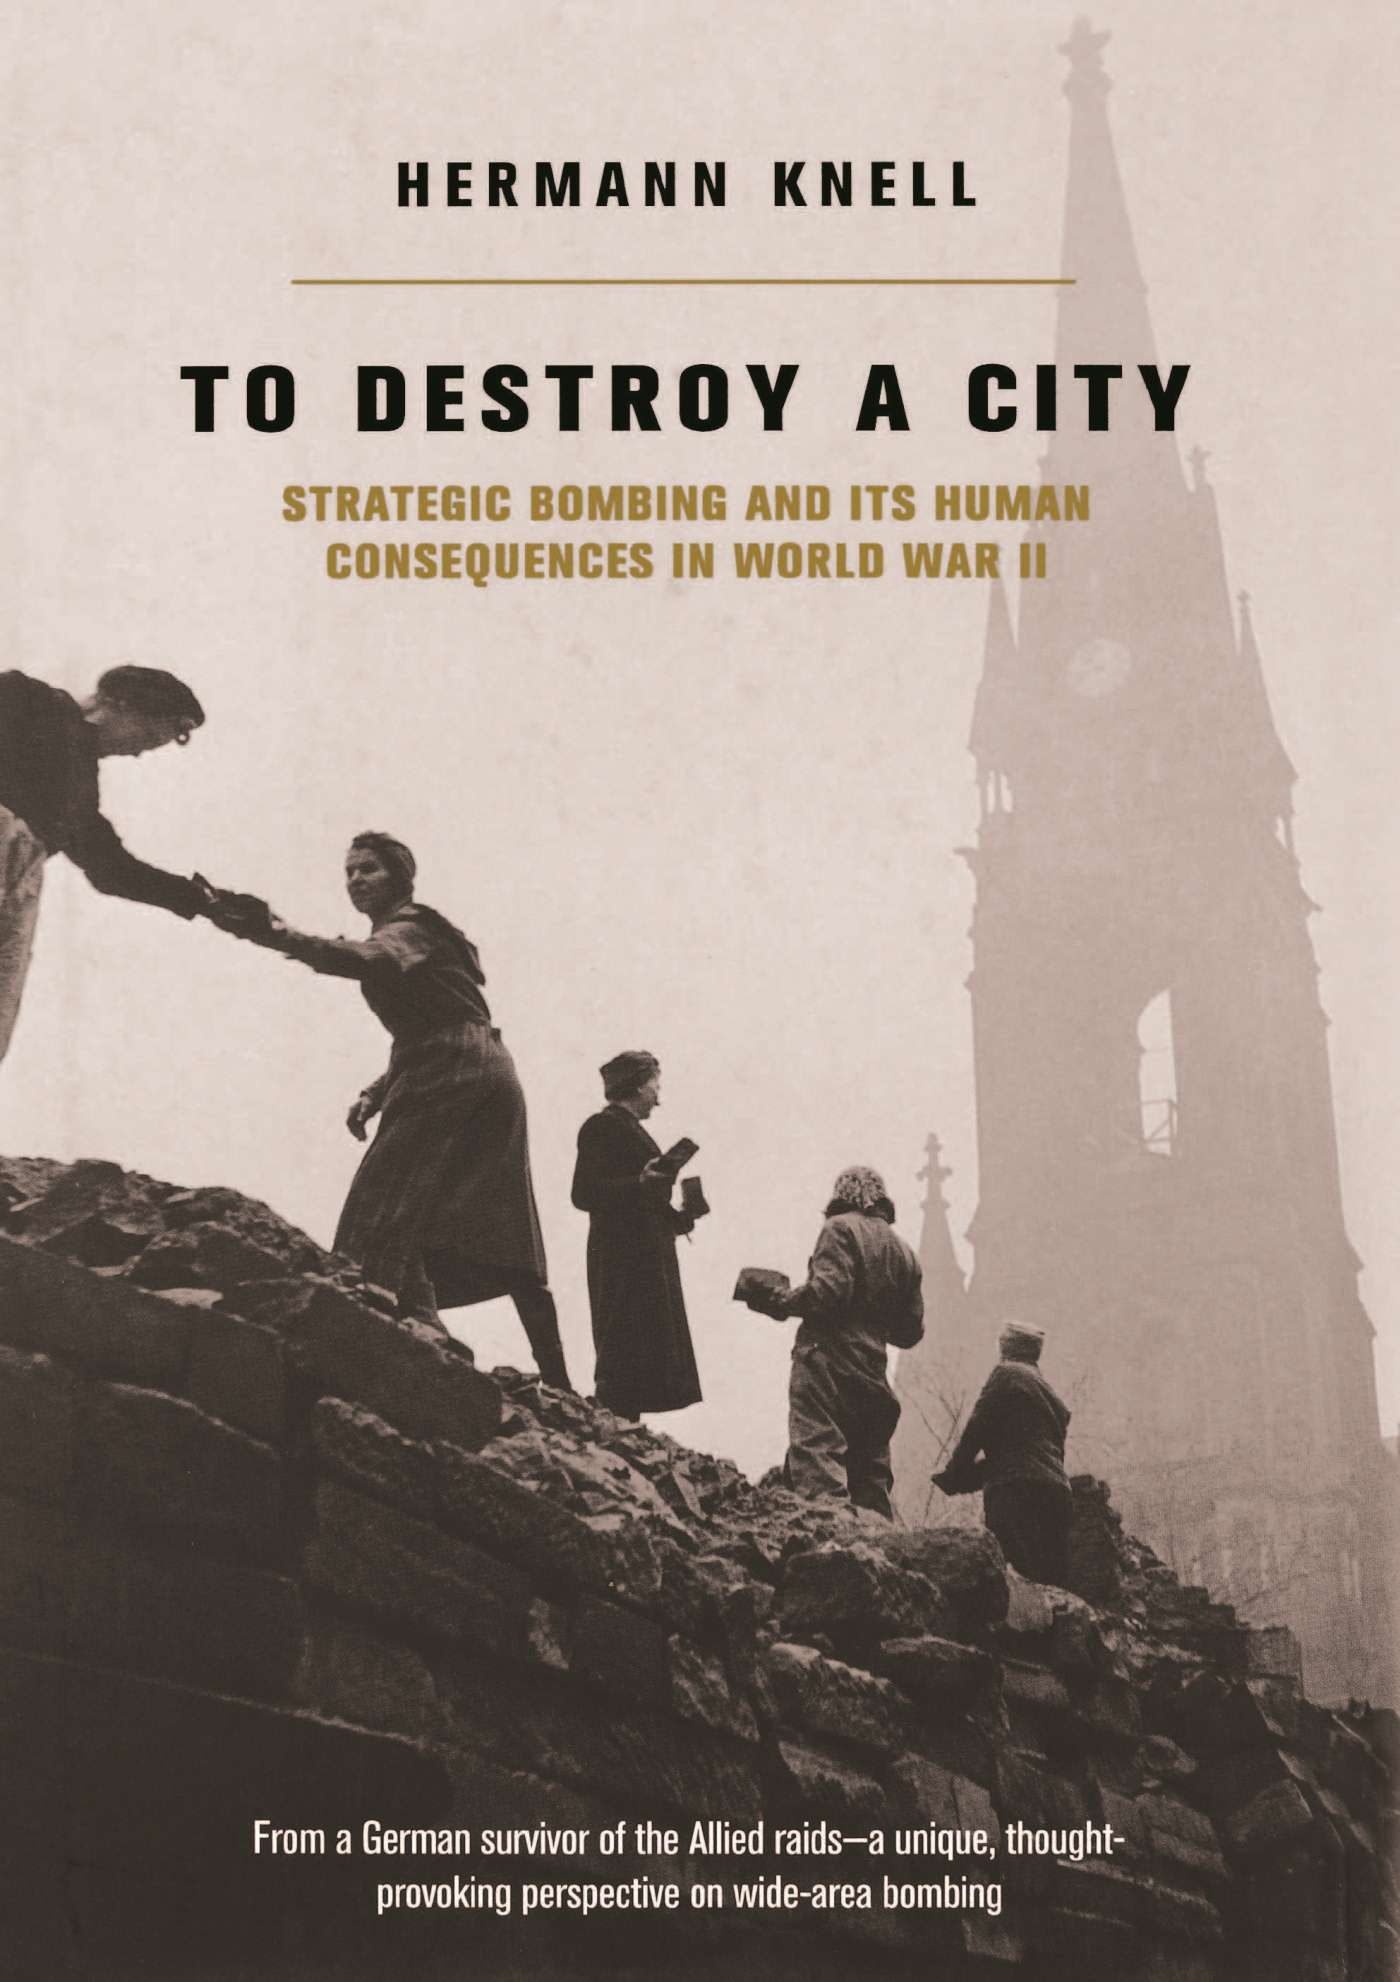 an analysis of world war i and its consequences Events leading to world war i • june 1914- assassination of archduke franz ferdinand of austria in sarajevo • july 1914-austrians send ultimatum to serbia with german support.